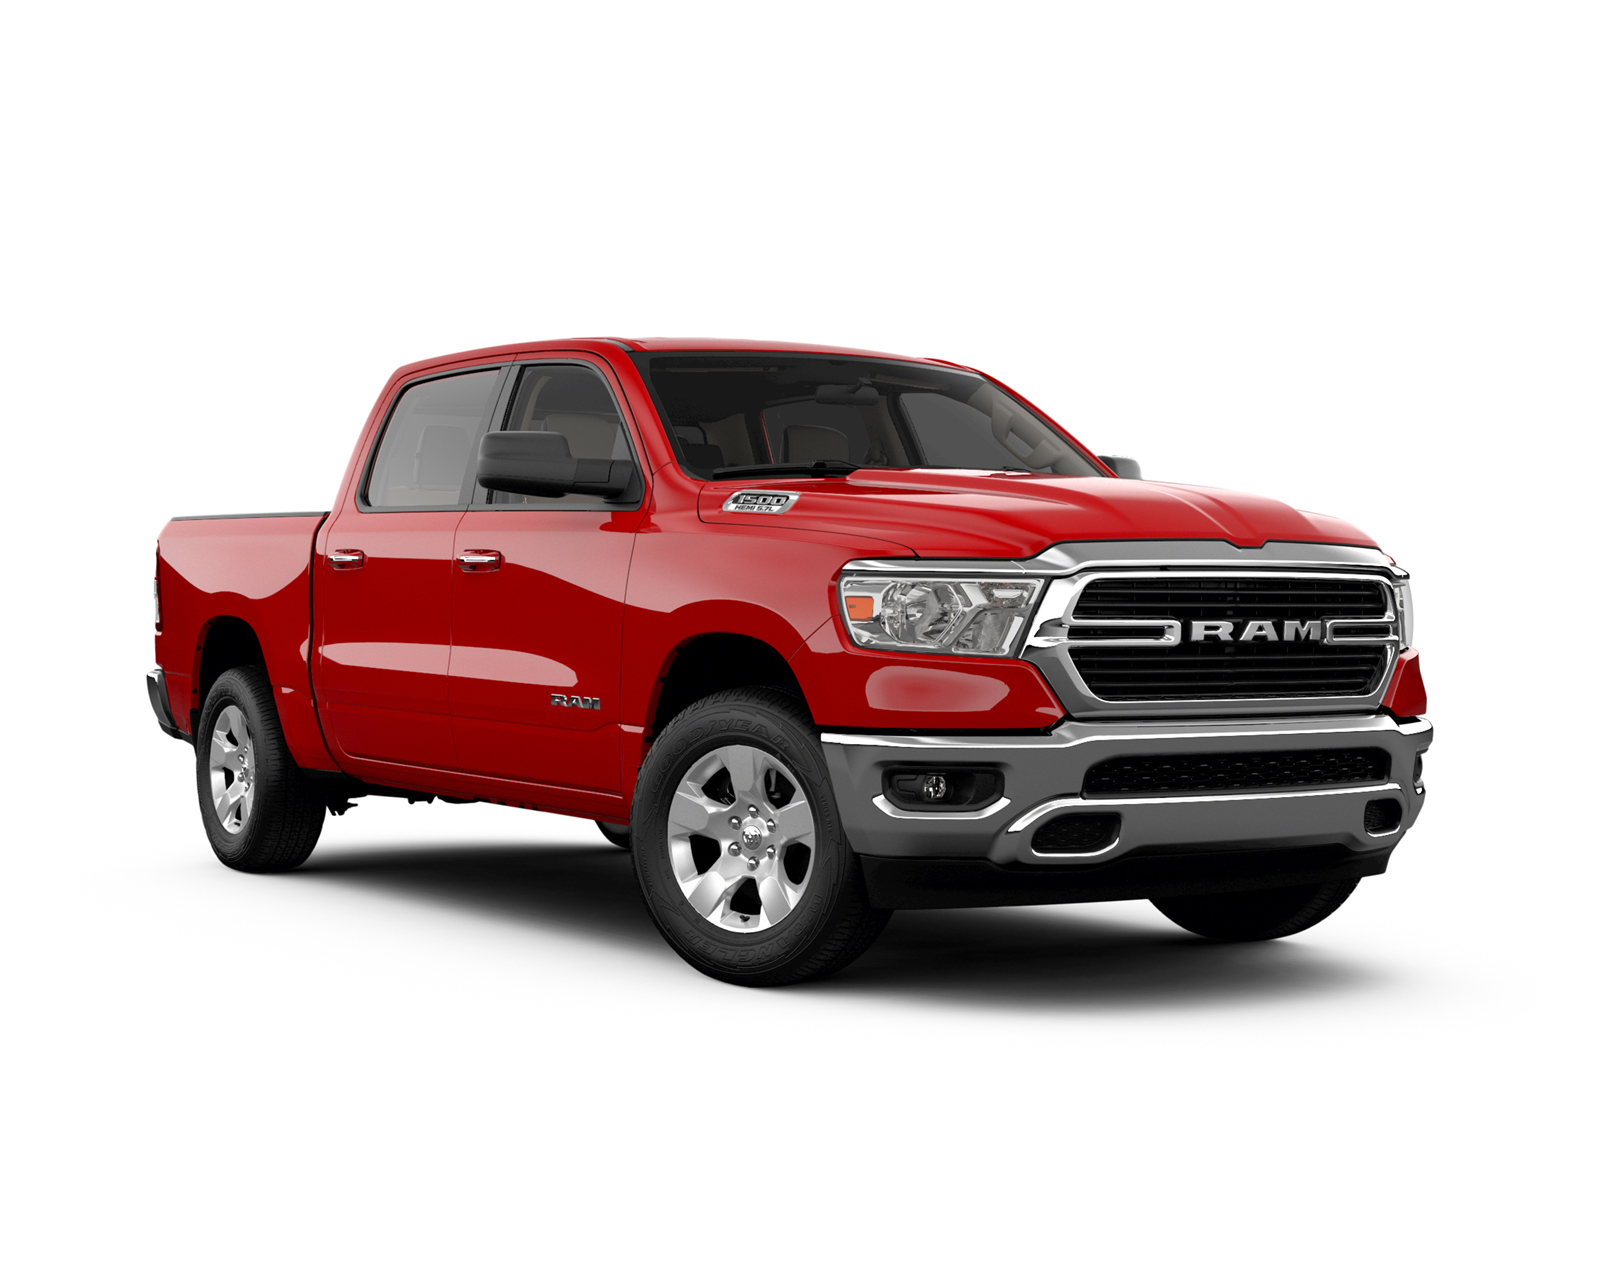 2019 Ram 1500 Lone Star Is A Truck That Calls Texas Home